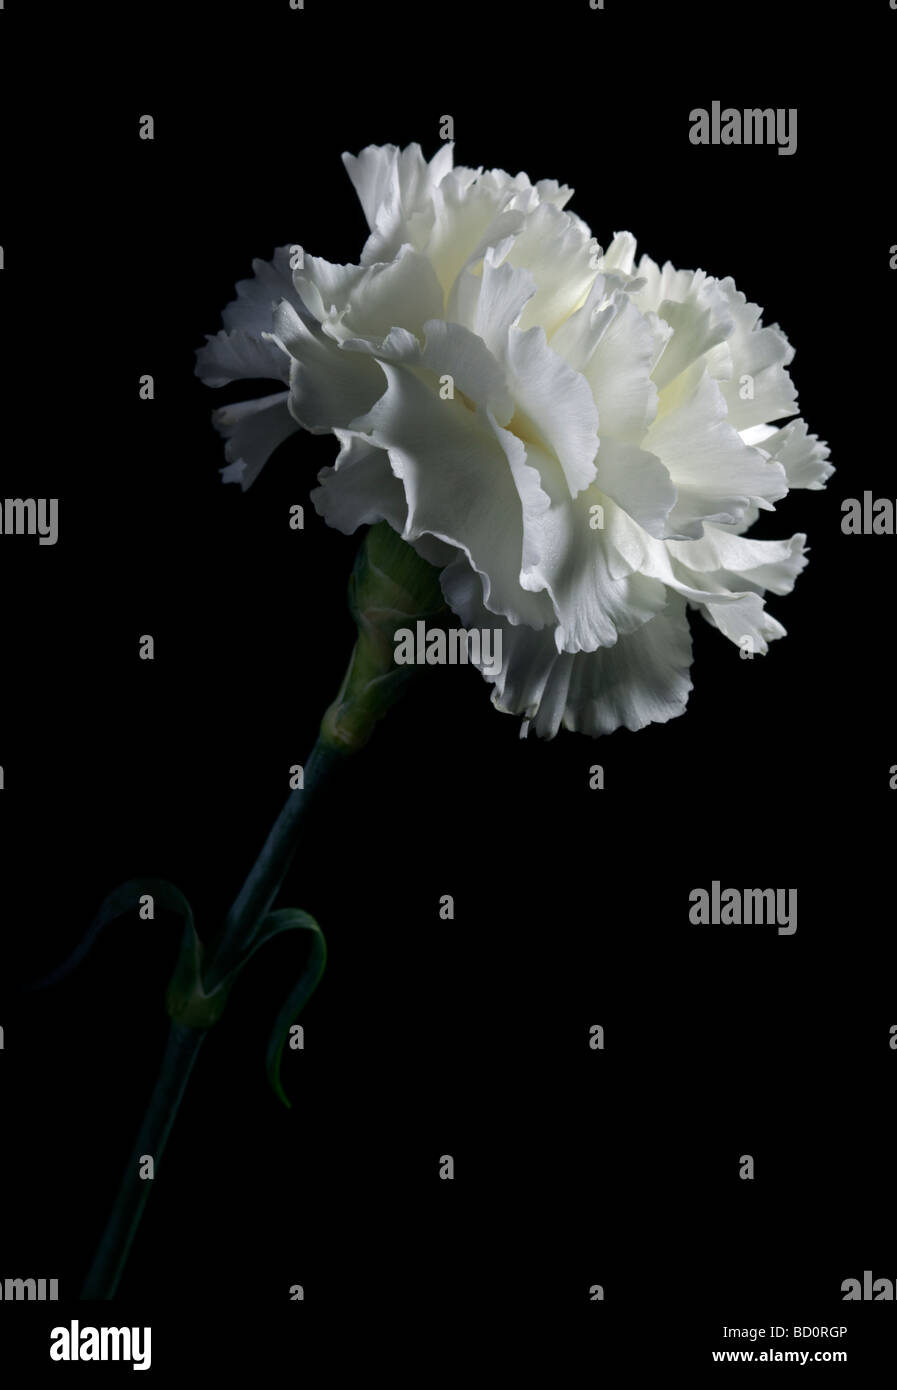 White Carnation on black - Stock Image